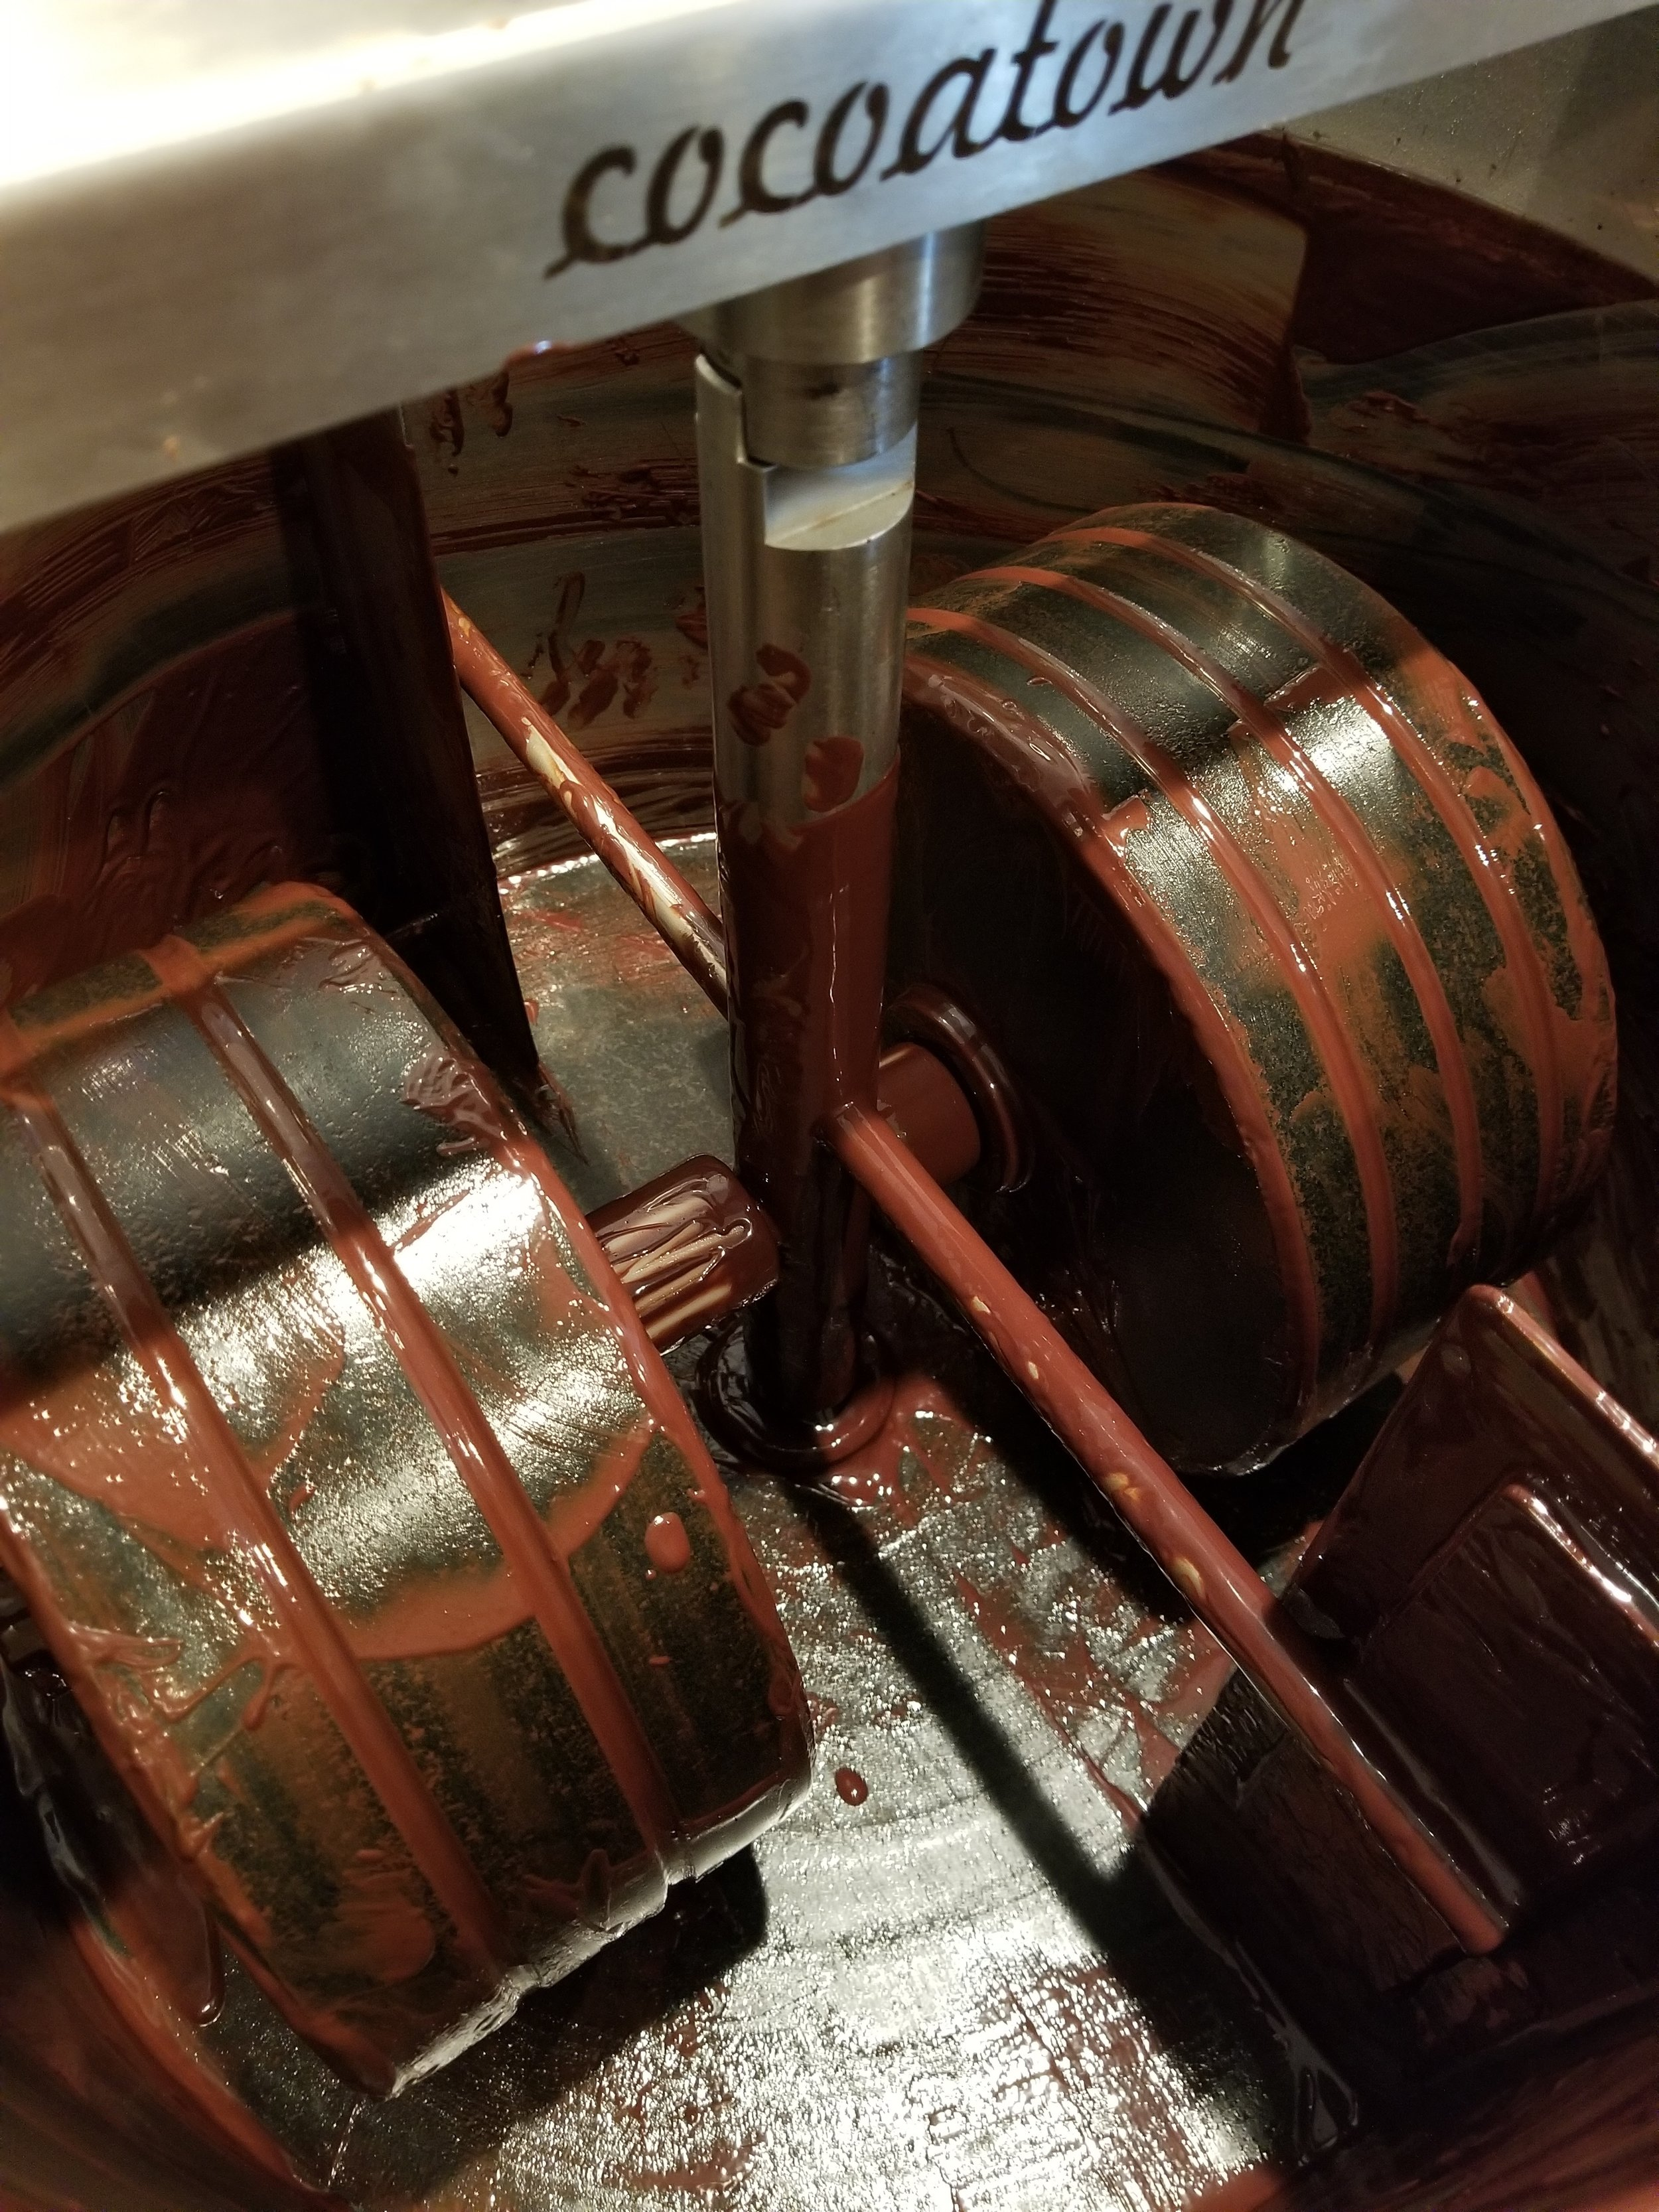 100 pounds of chocolate was just emptied from this grinder, if you were here you could have licked the bowl!  LOL